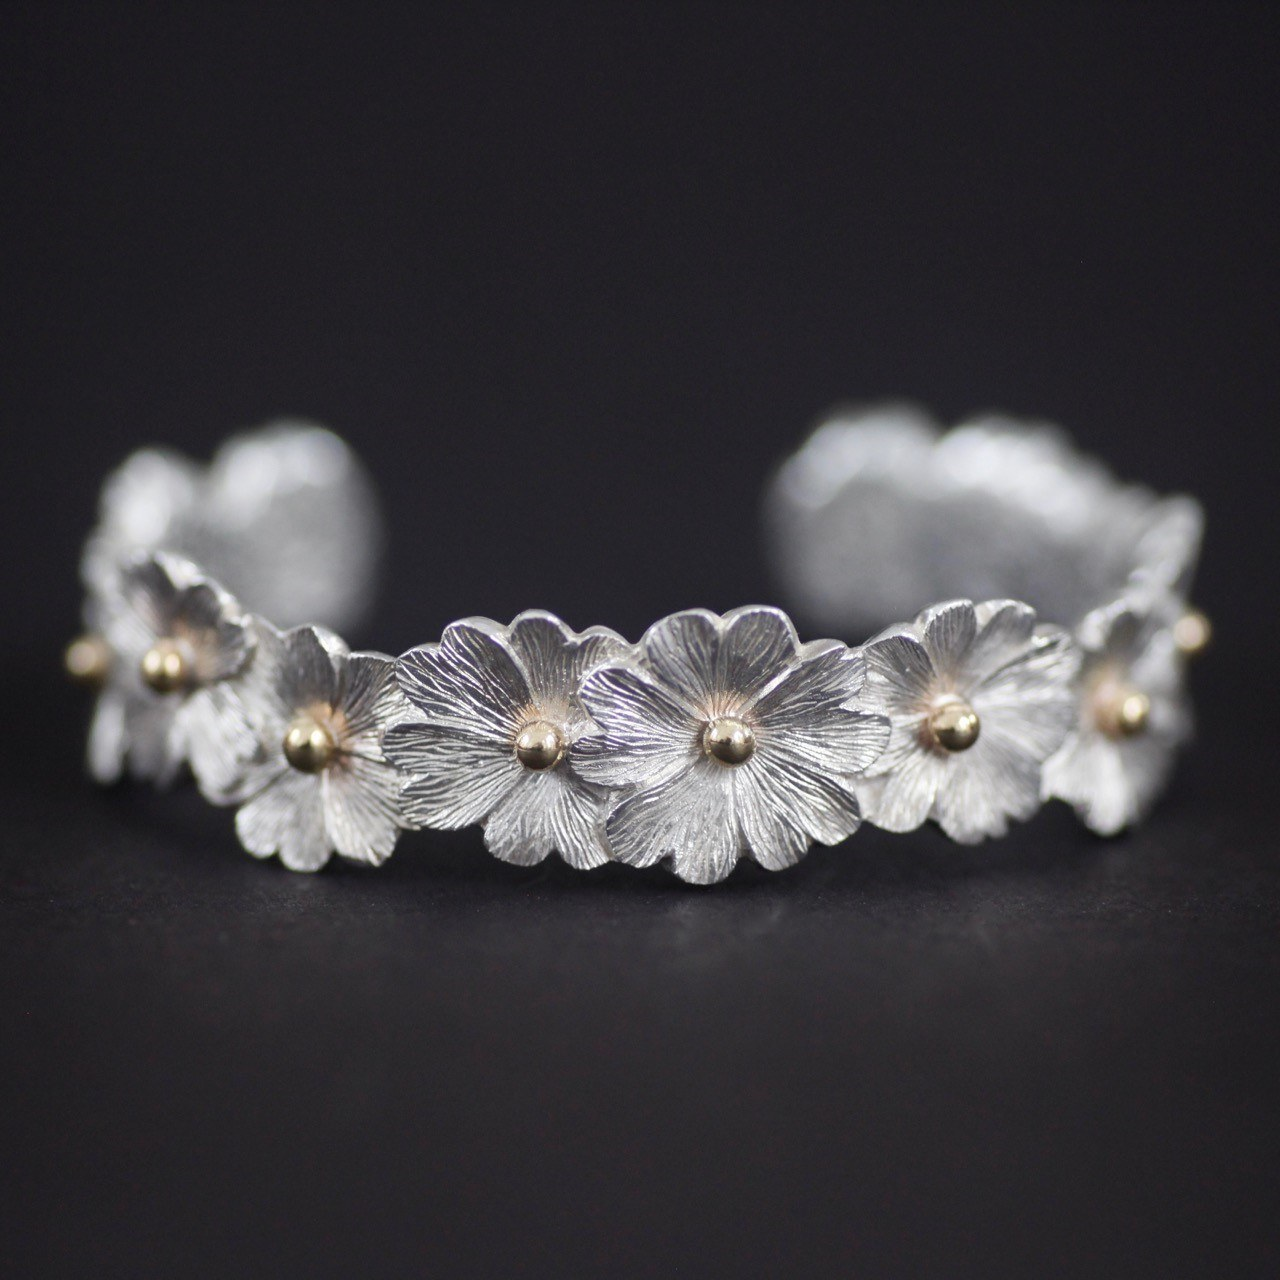 Malcolm Appleby Primrose Bangle featured in online auction